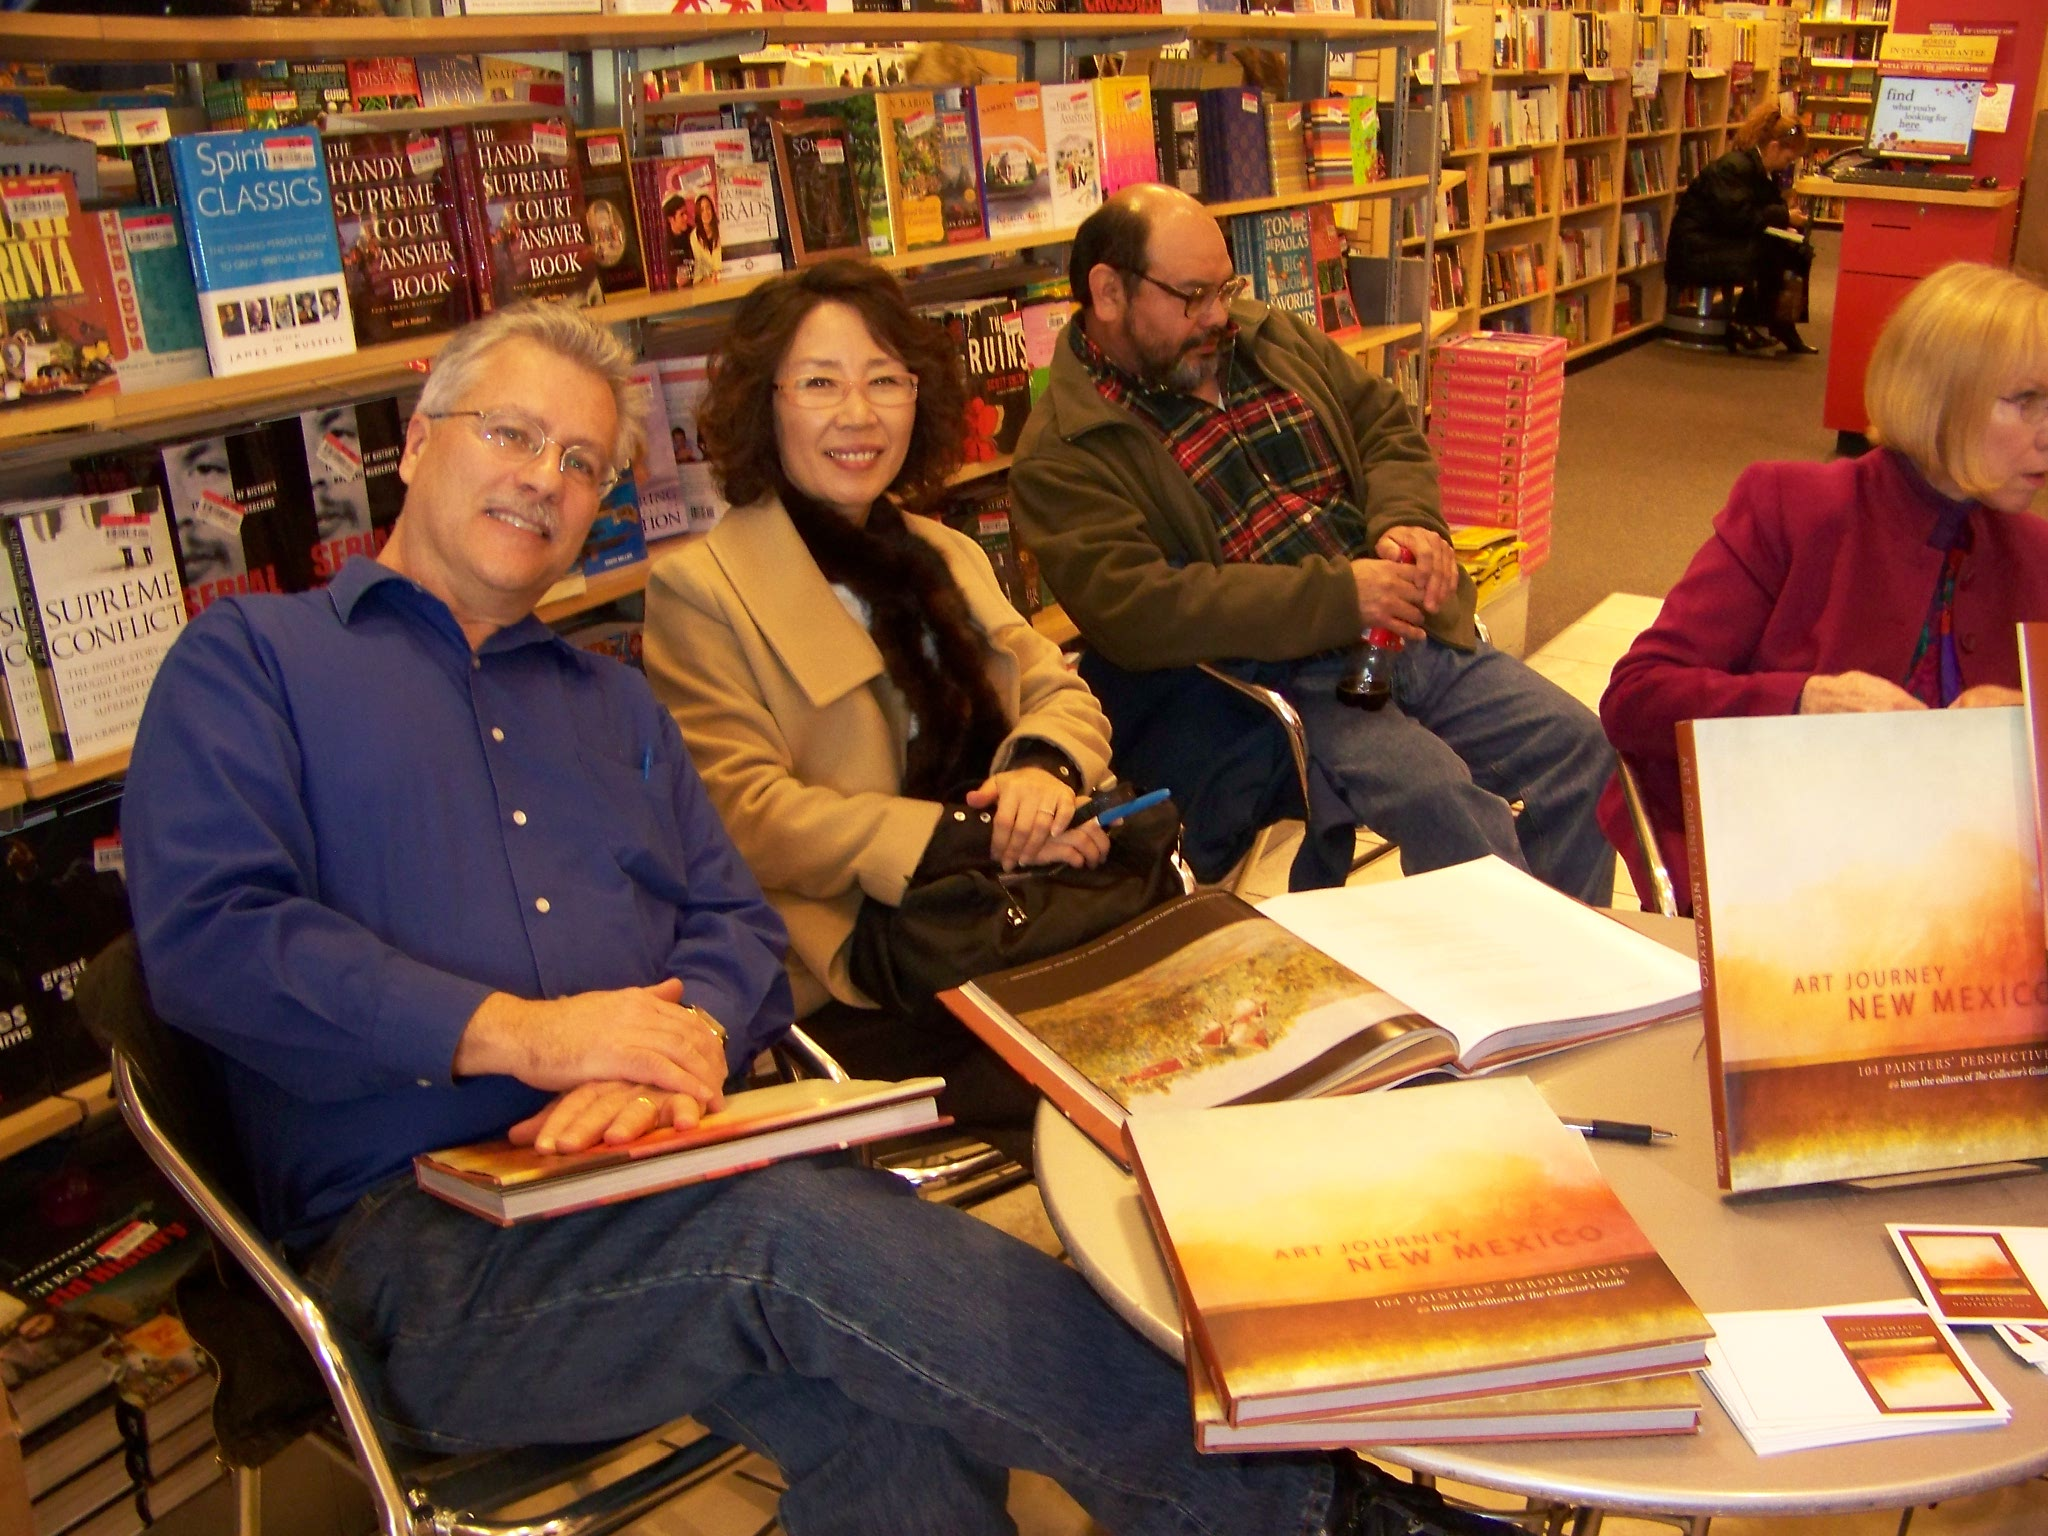 Book Signing, Barns Nobles_Art Journey